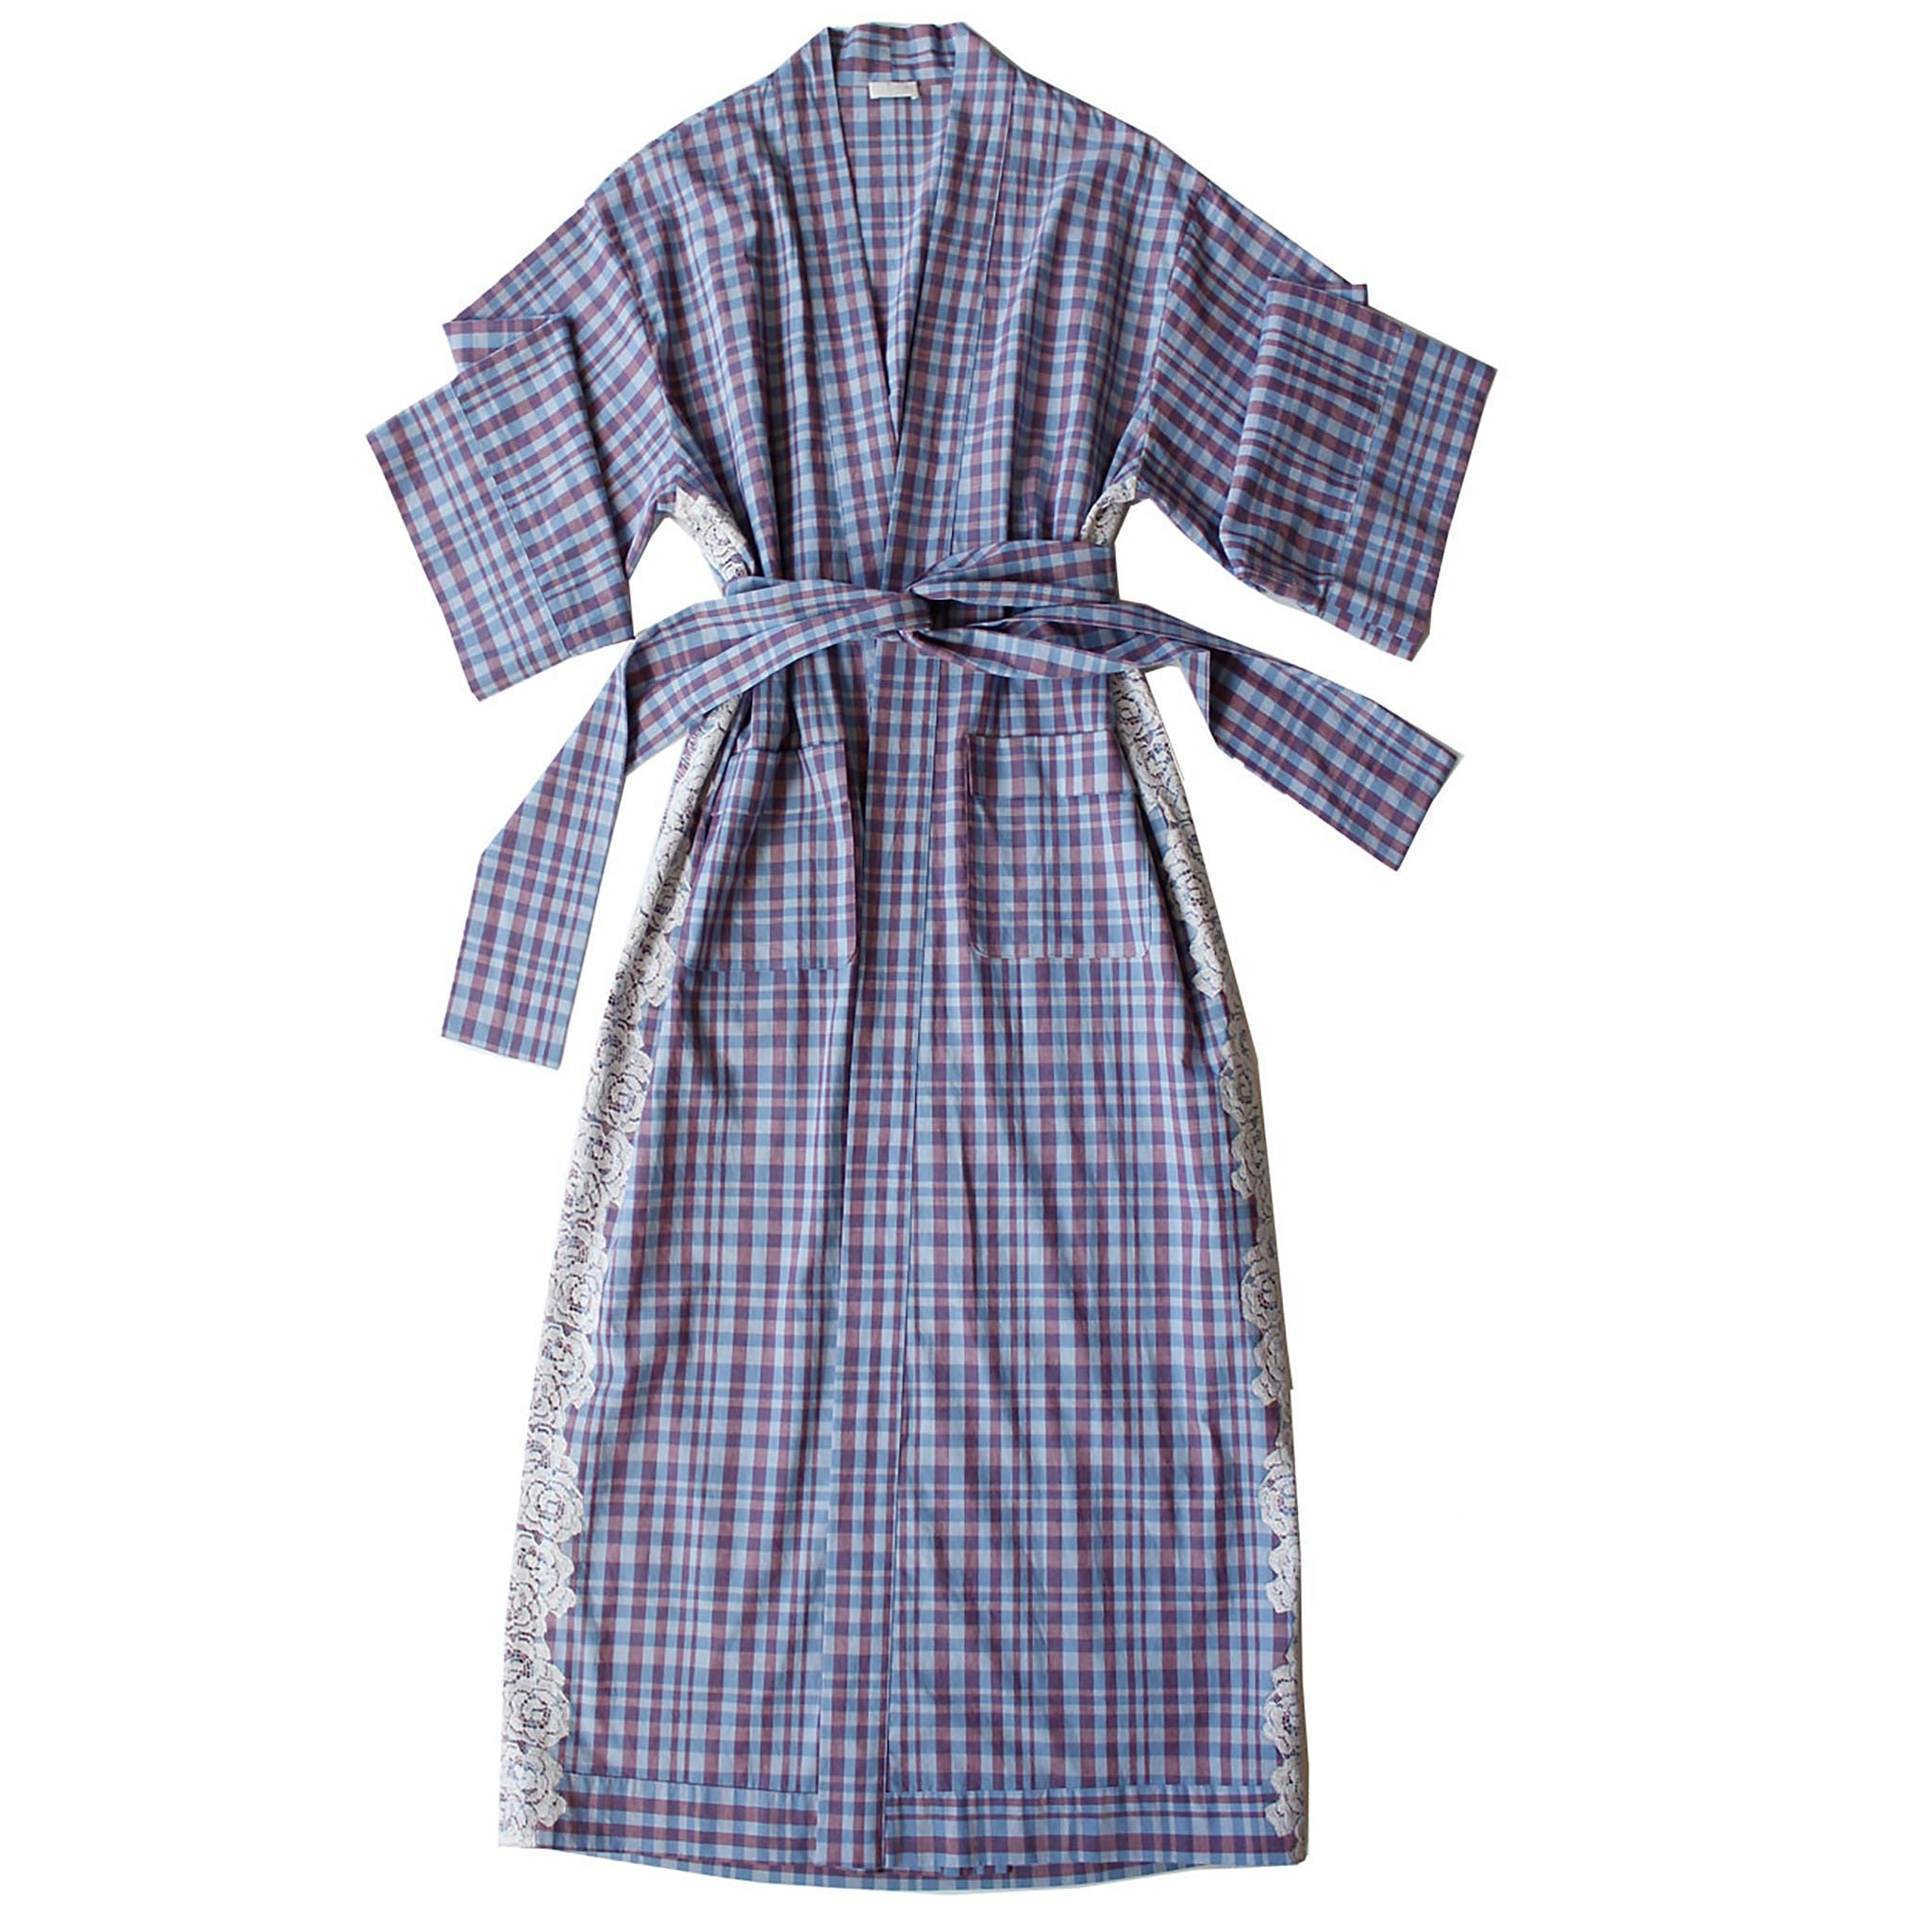 Asteria Kimono Robe in Italian Plaid Cotton